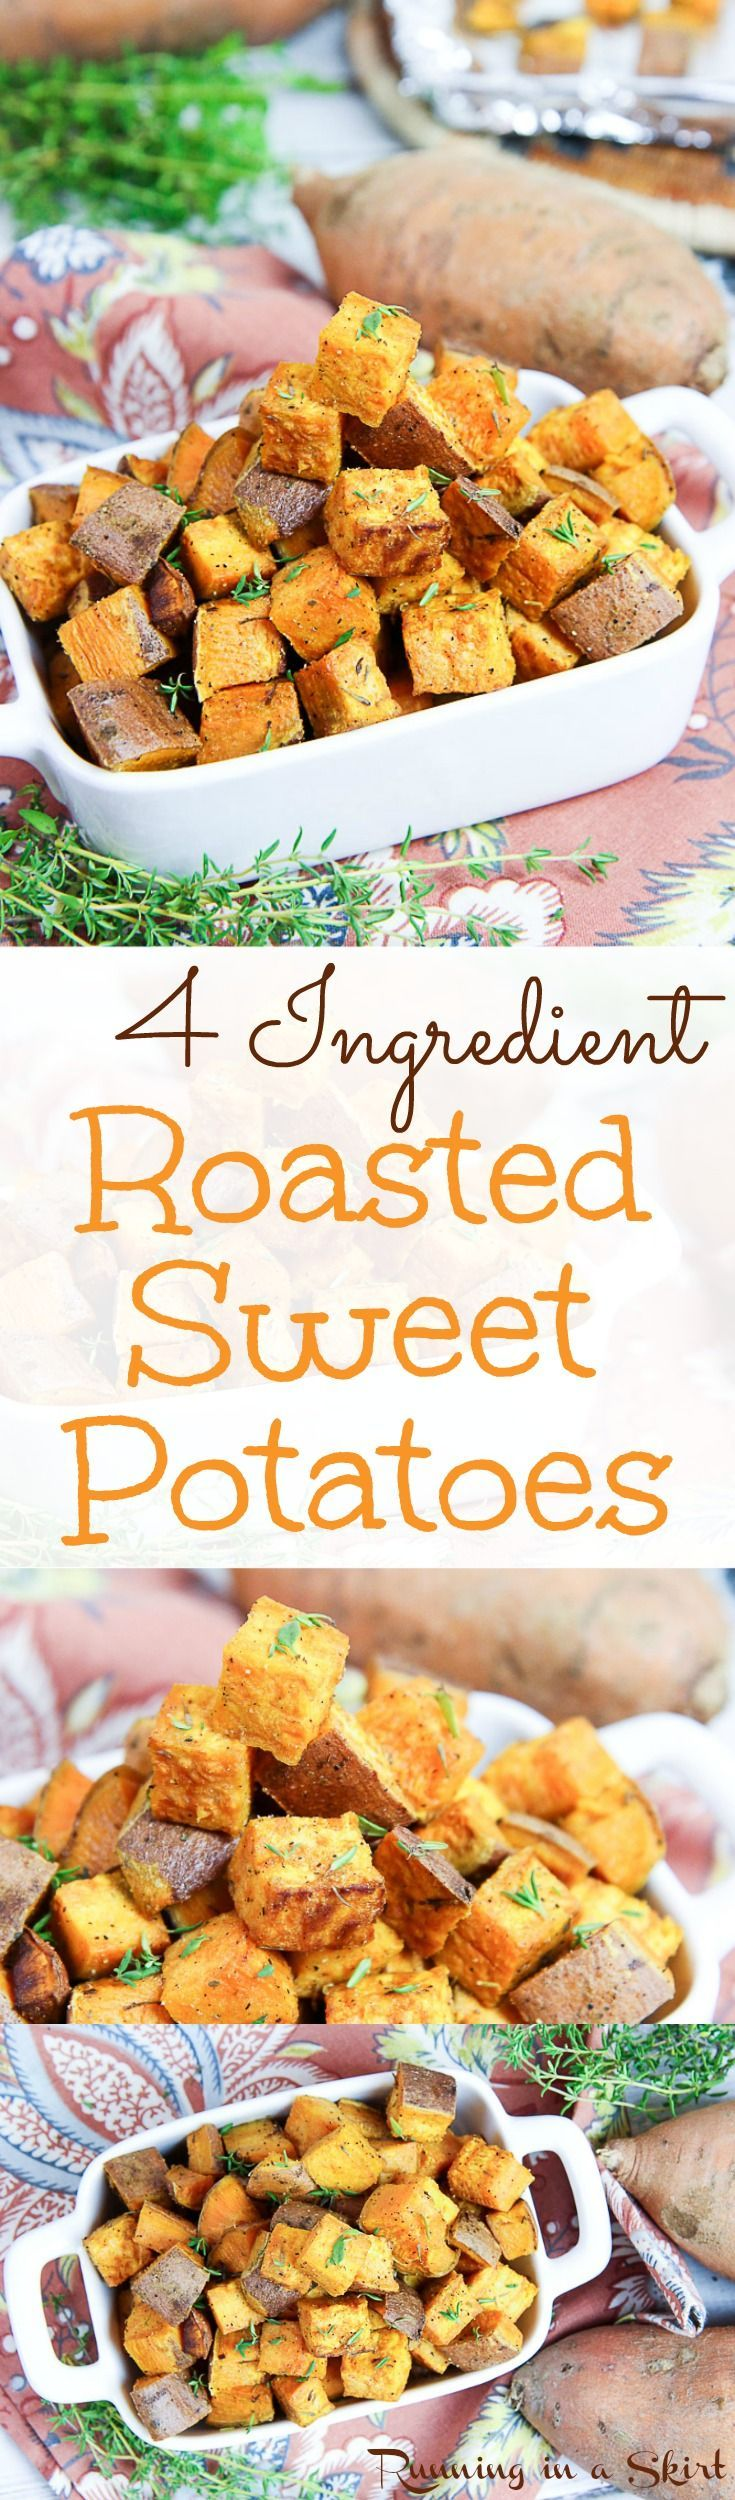 4 Ingredient Healthy Roasted Sweet Potato Bites recipe.  The best oven roasted savory, simple and easy crispy sweet potatoes.  A quick, clean eating side dish and simply the best way to cook them. Eat year-round or even for Thanksgiving! / Running in a Skirt